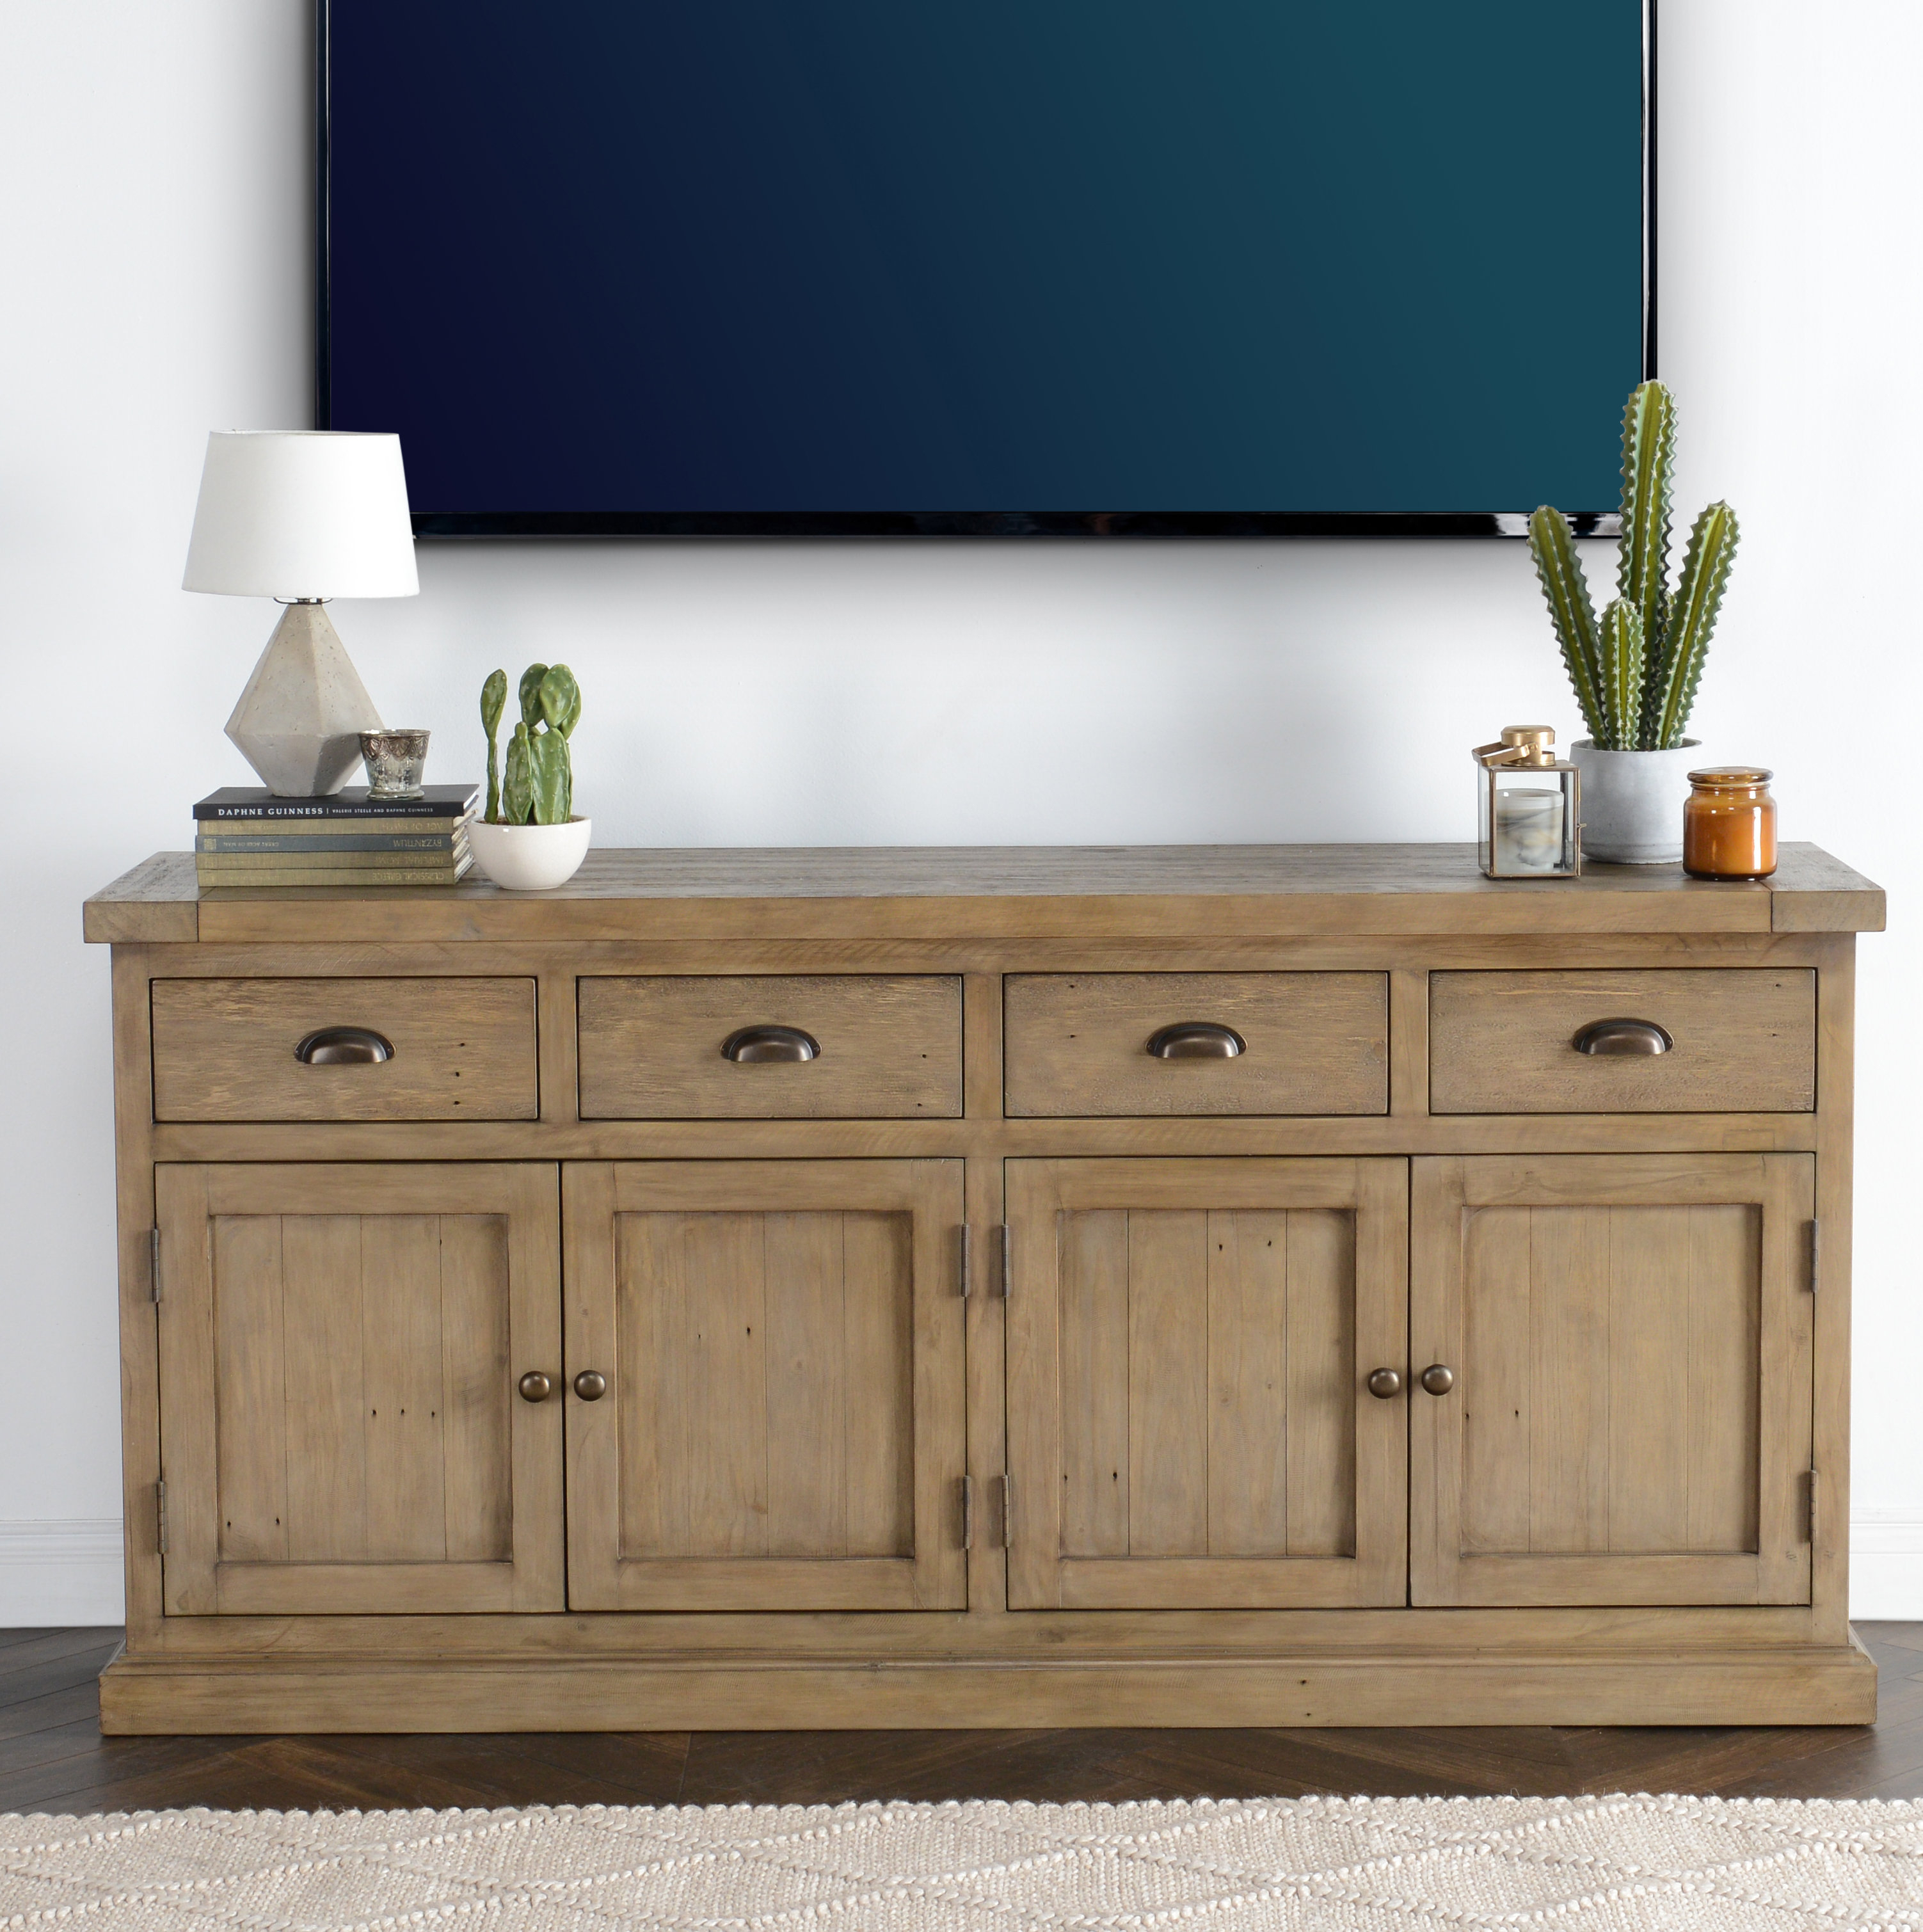 Farmhouse & Rustic Pine Sideboards & Buffets | Birch Lane With Regard To Recent Steinhatchee Reclaimed Pine 4 Door Sideboards (#11 of 20)